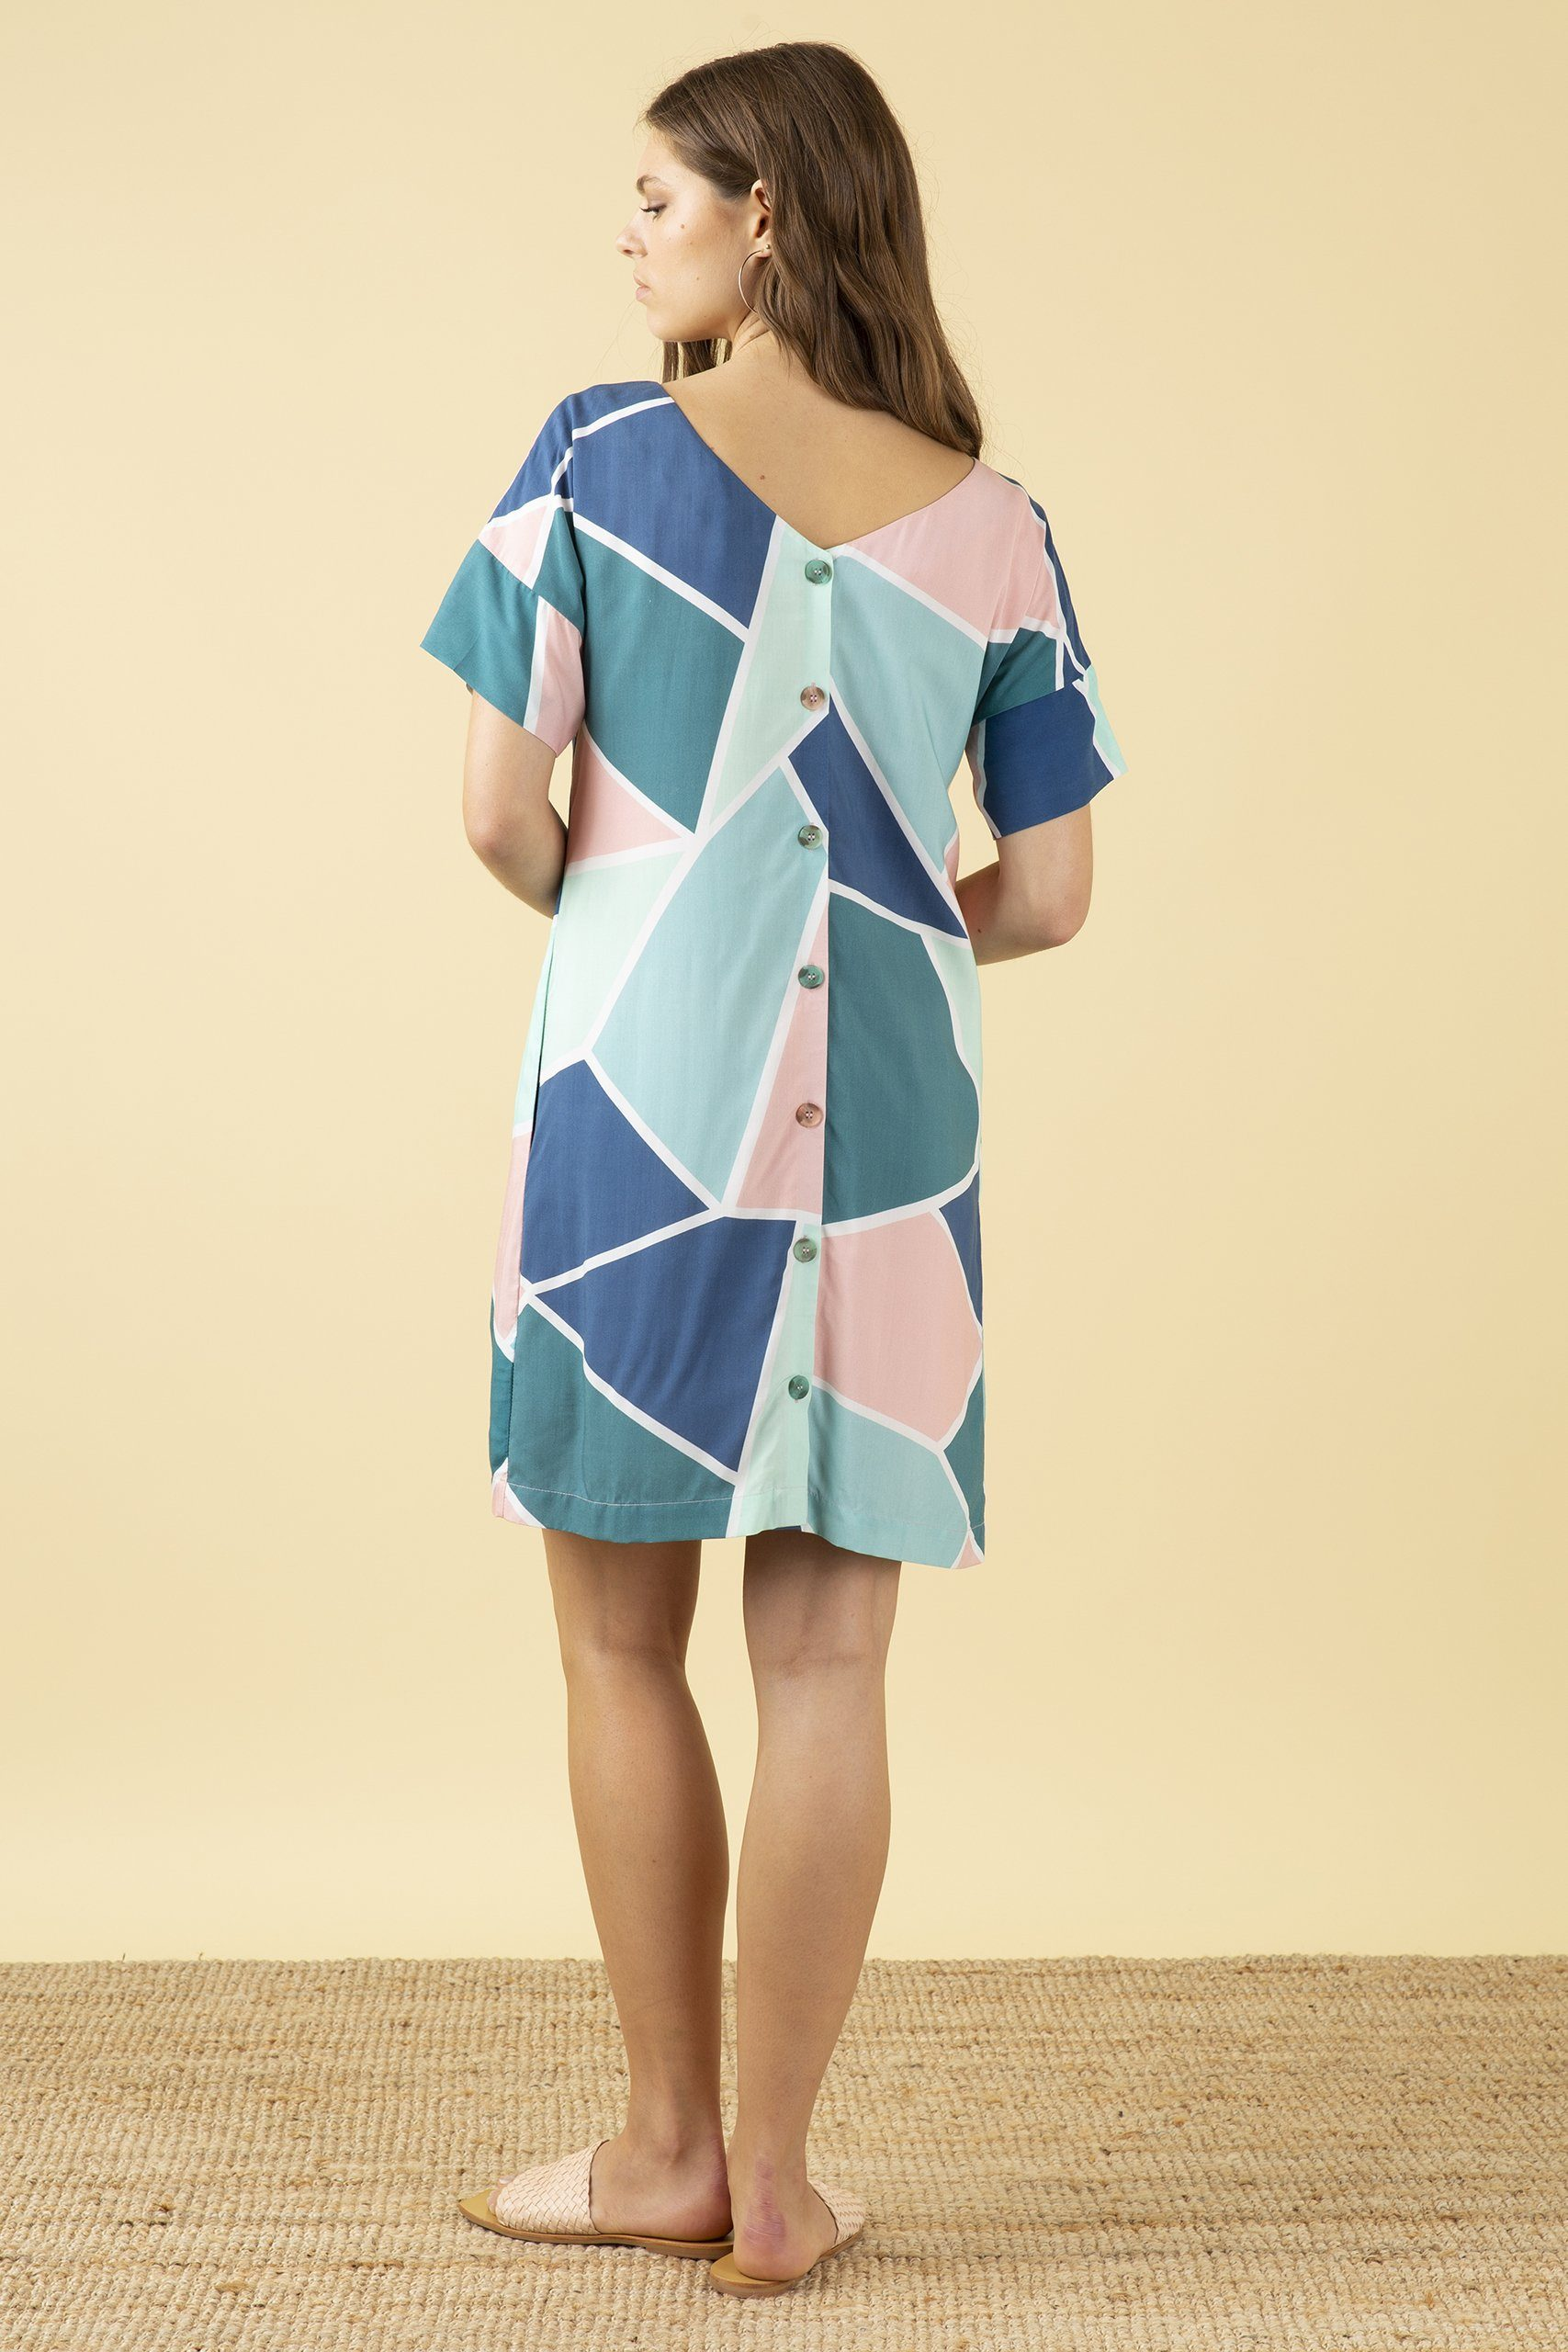 Emily & Fin Gigi Dress Mosaic Tile - BouChic